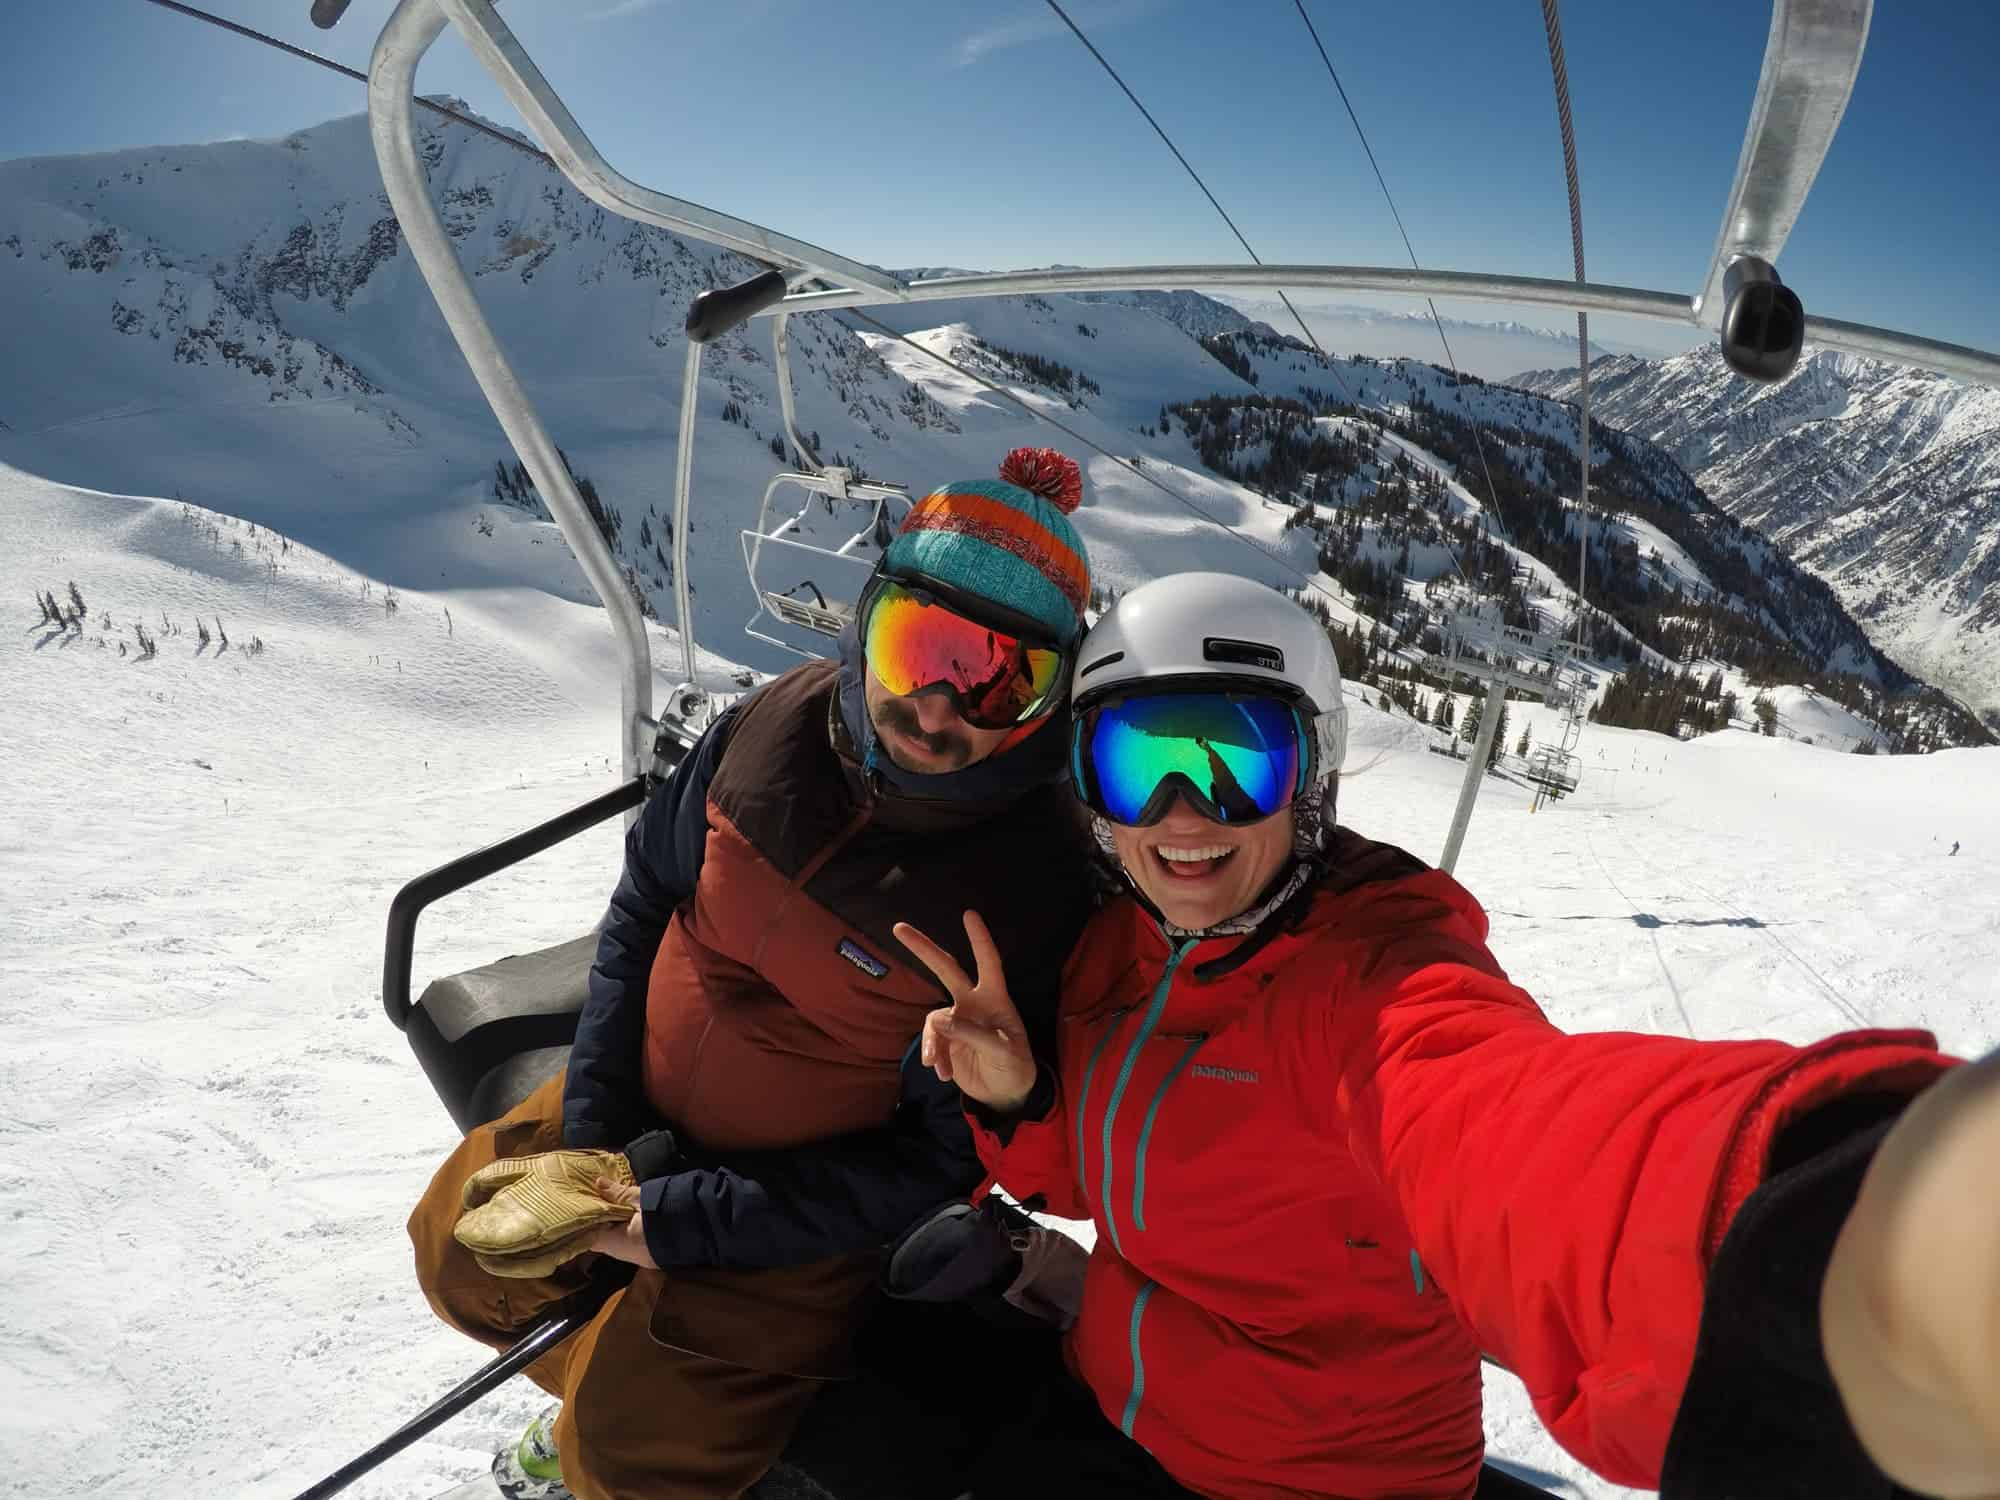 REI Membership benefits include discounts on lift tickets at ski resorts all across the country.